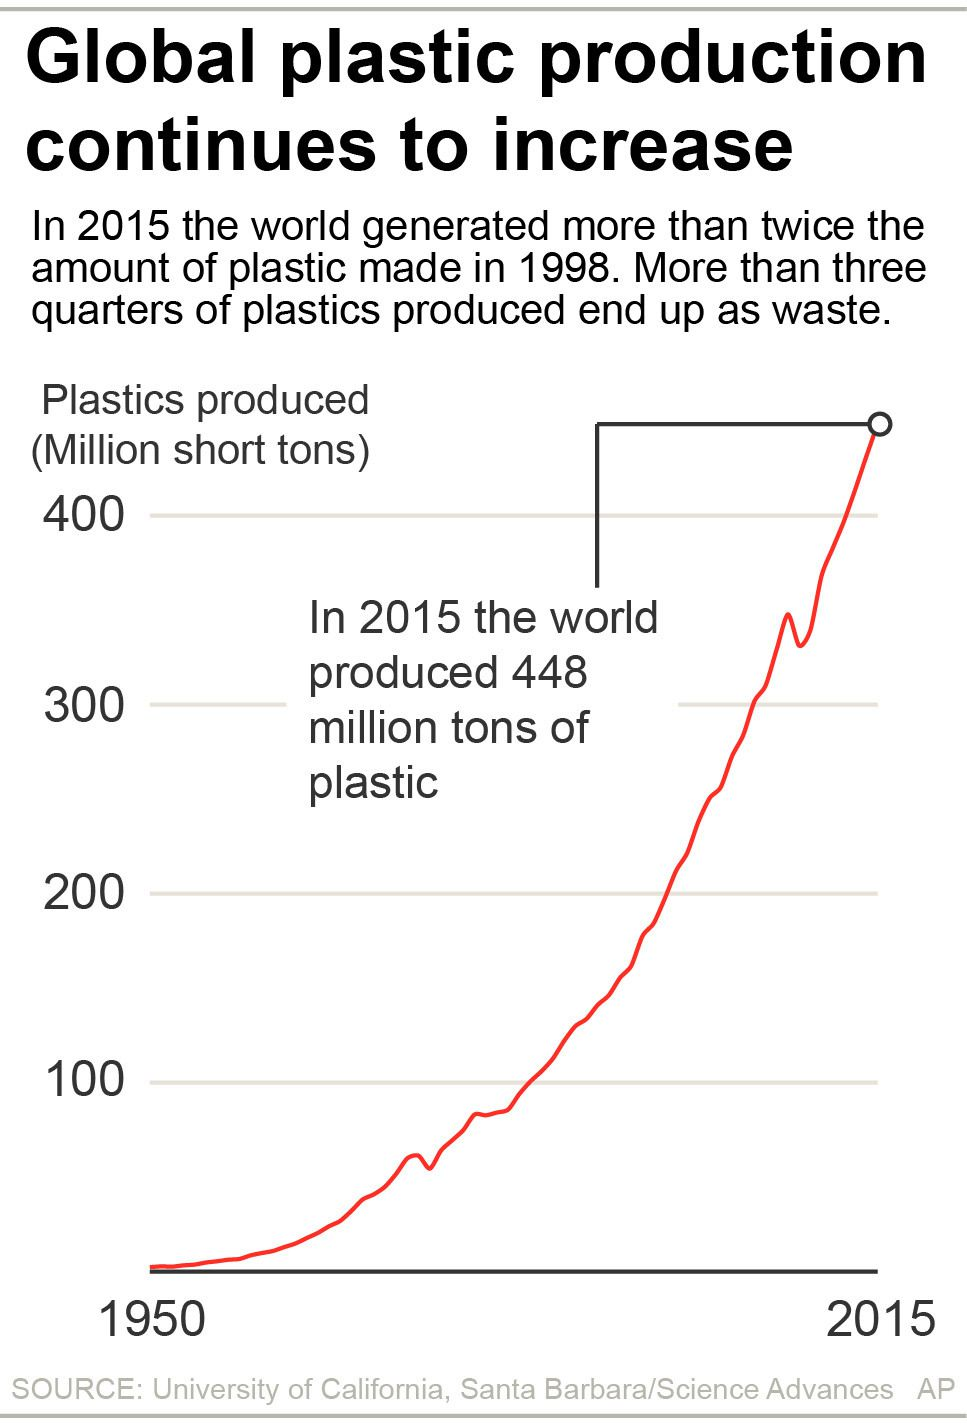 Increase in global plastic production from 1950 to 2015.